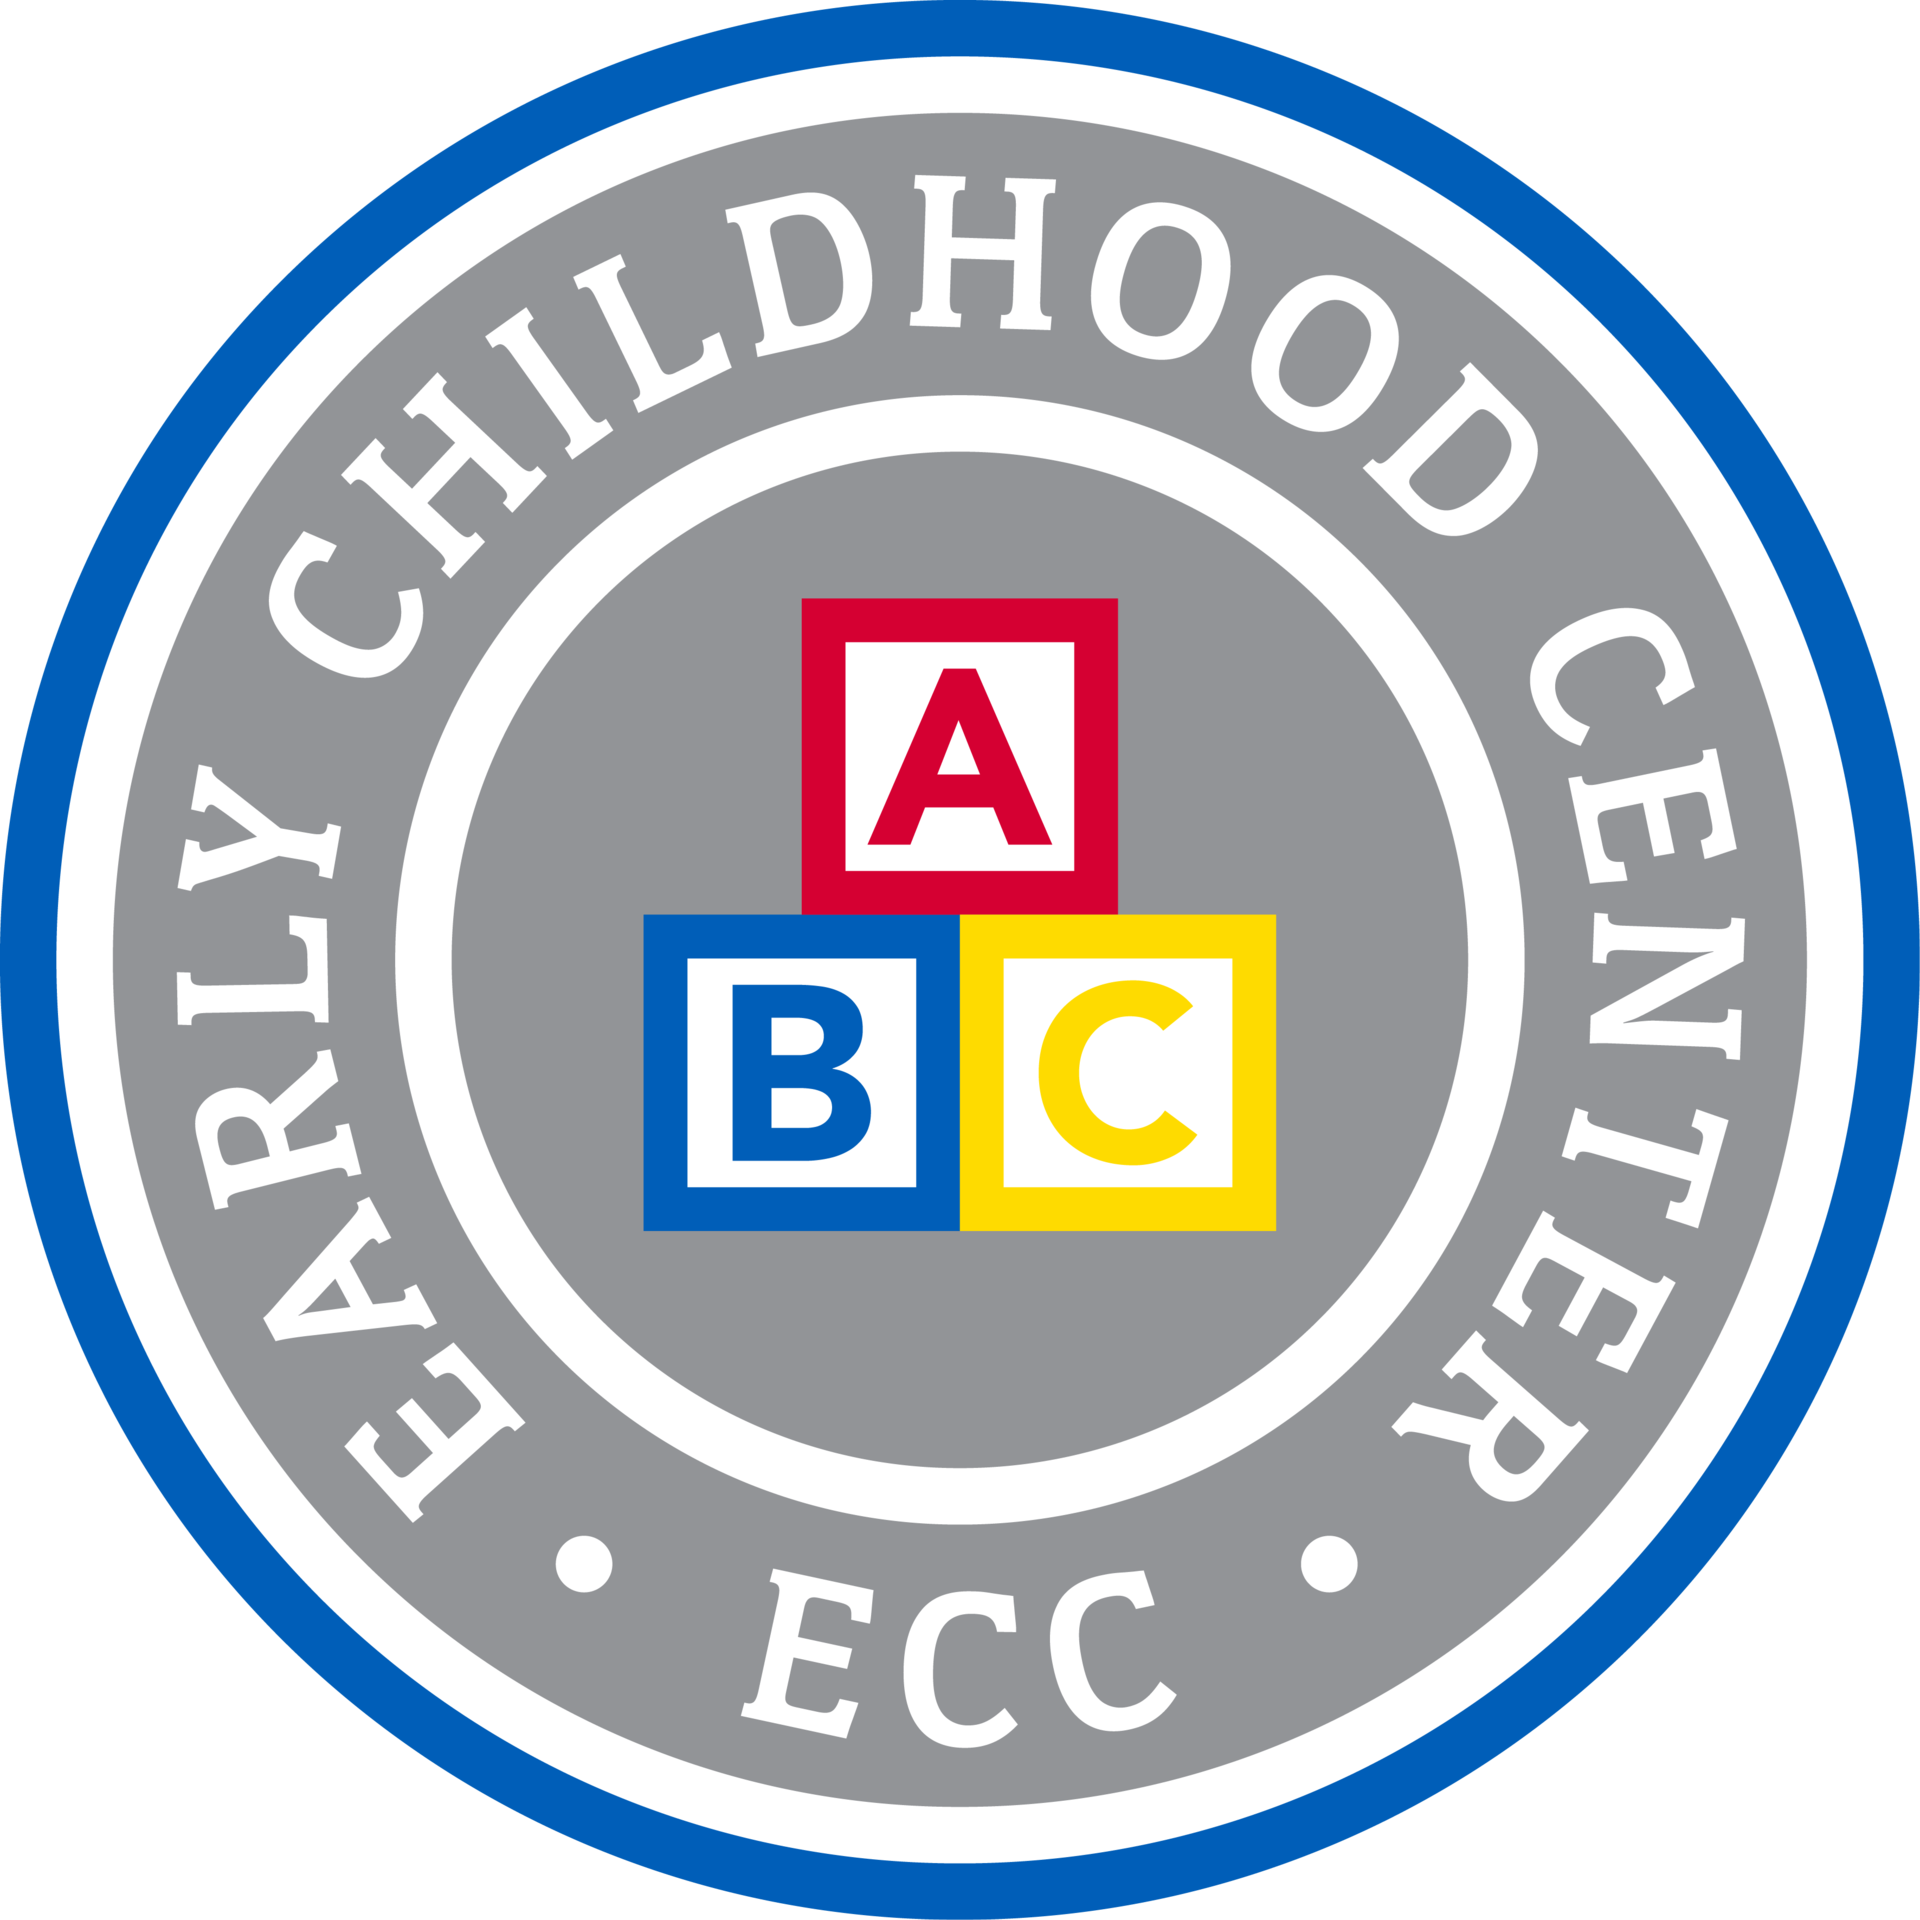 Early Childhood Center school seal